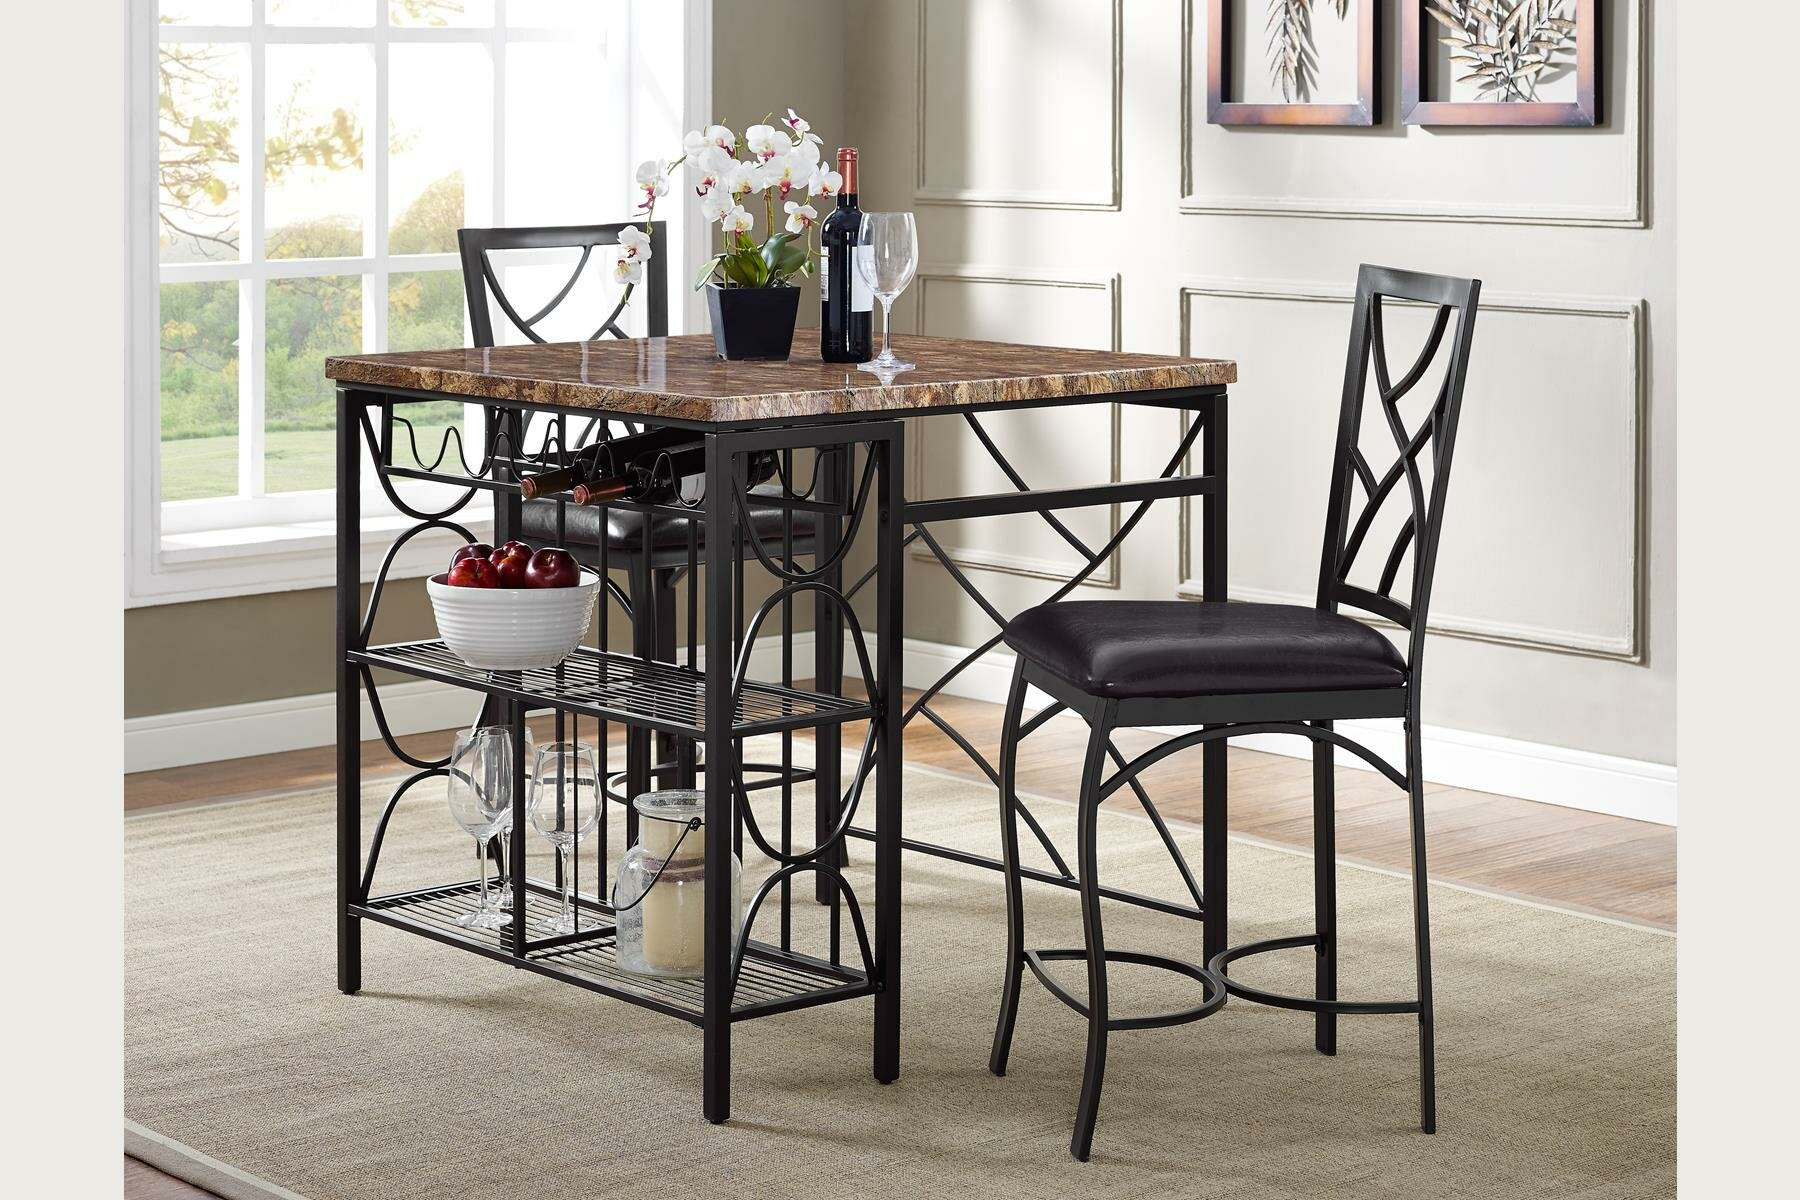 Vaughan Kitchen 3 Piece Breakfast Nook Dining Set Throughout Best And Newest 3 Piece Breakfast Dining Sets (Photo 14 of 20)